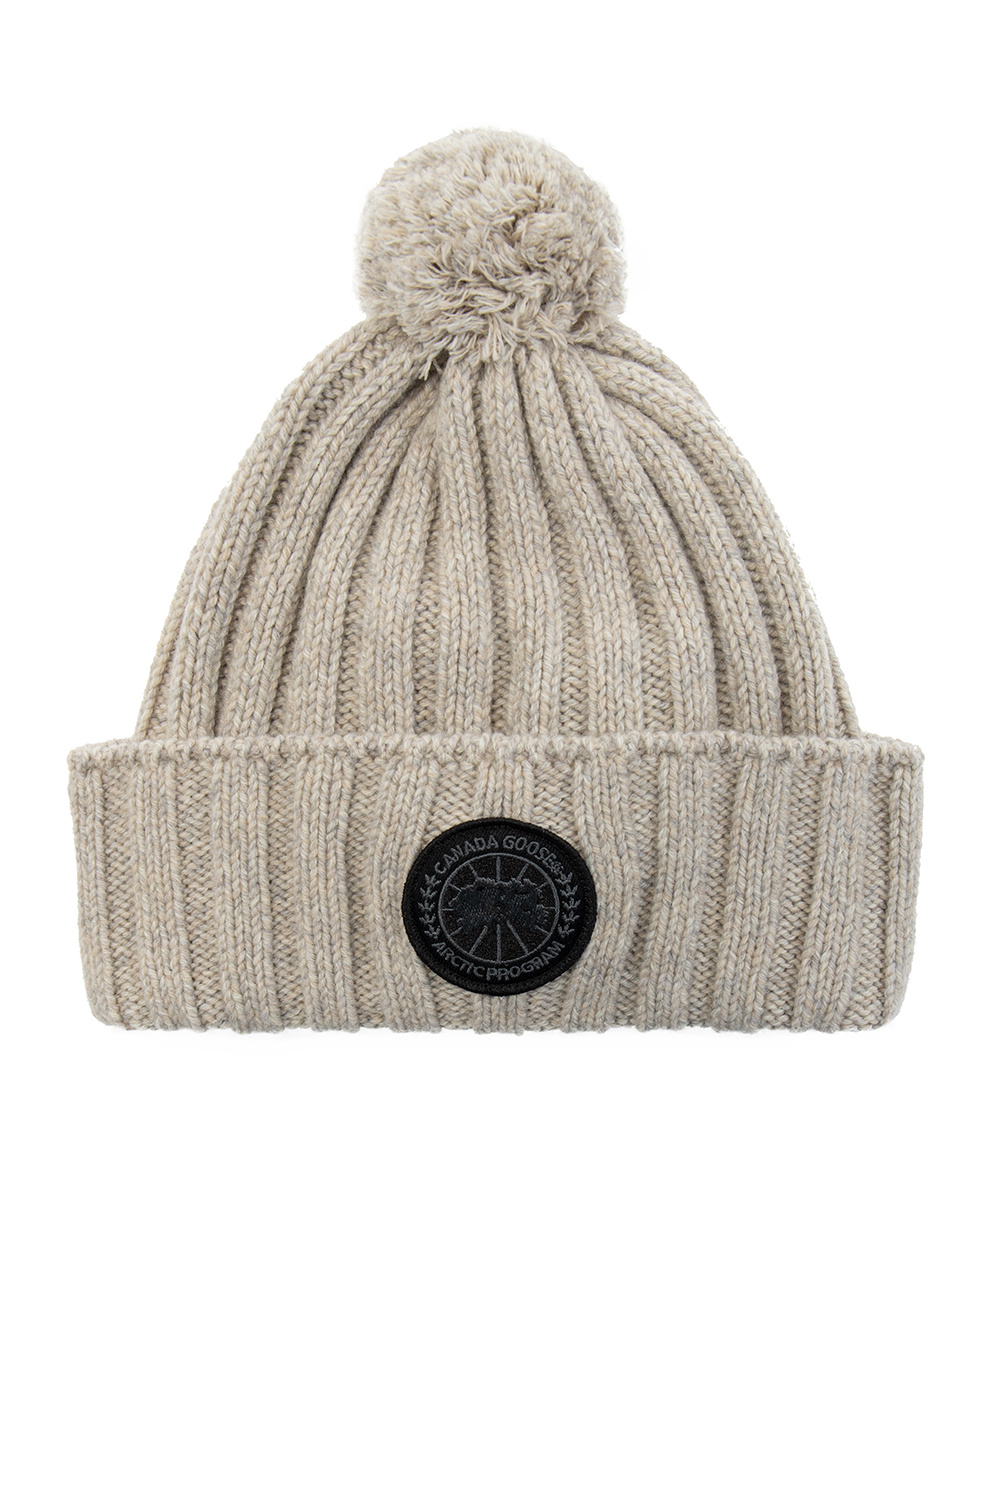 Canada Goose Hat with logo